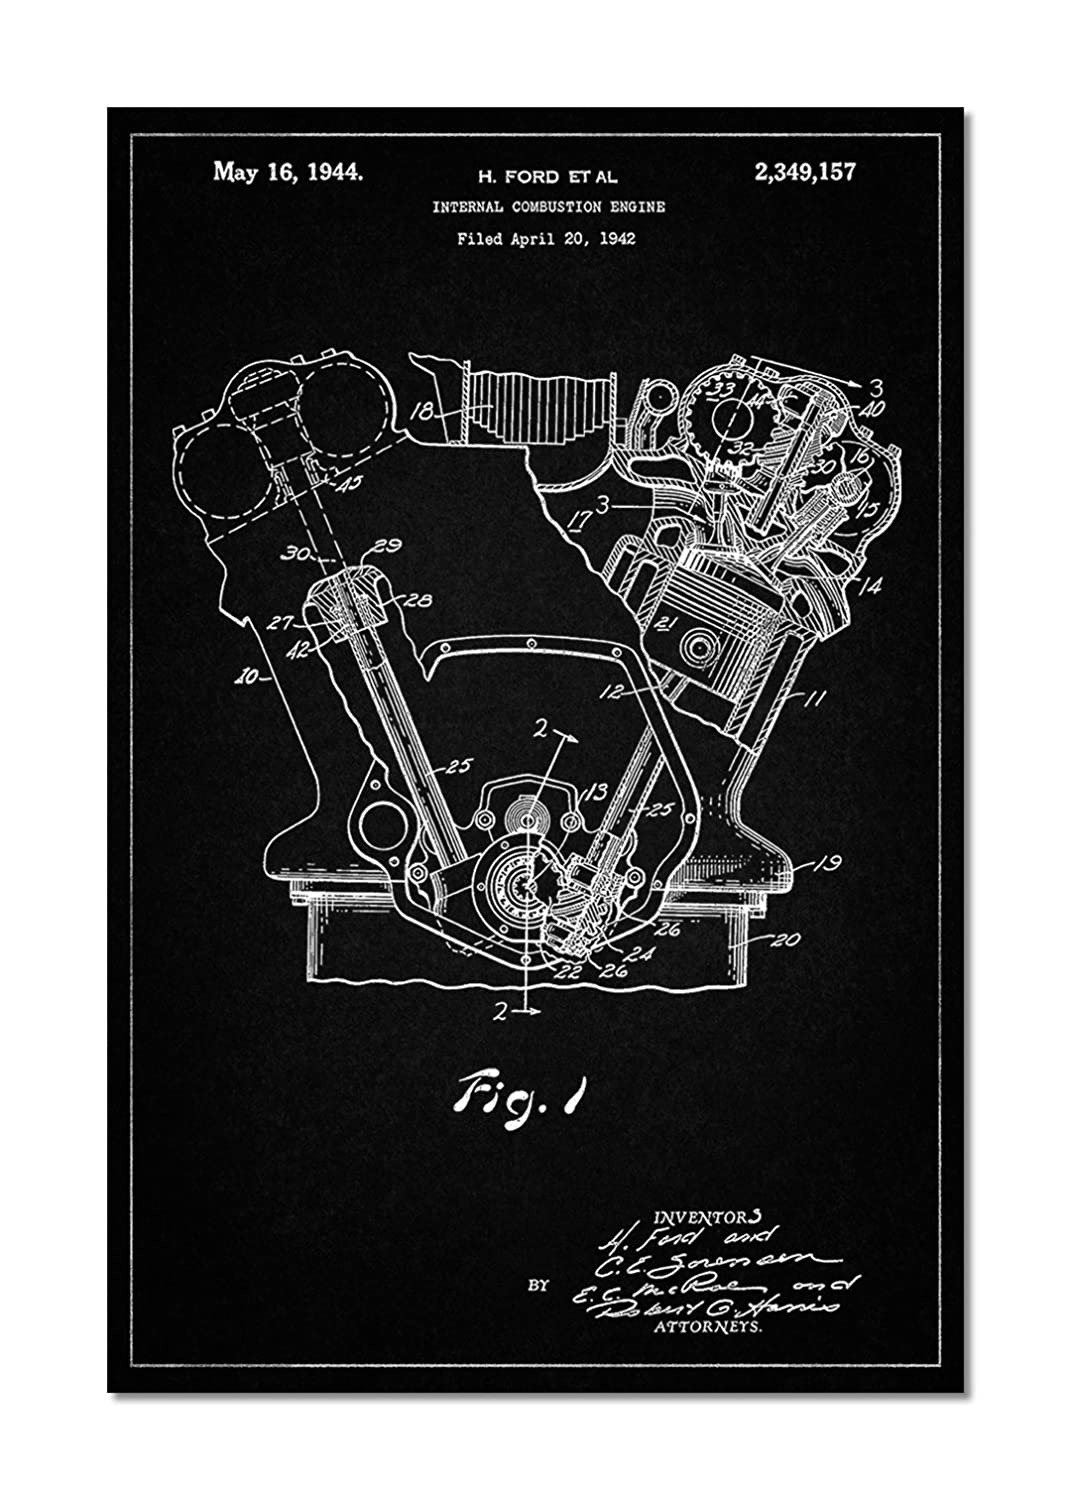 Ford Internal Combustion Engine Poster Posters Prints Illustrated Diagram Of A Basic